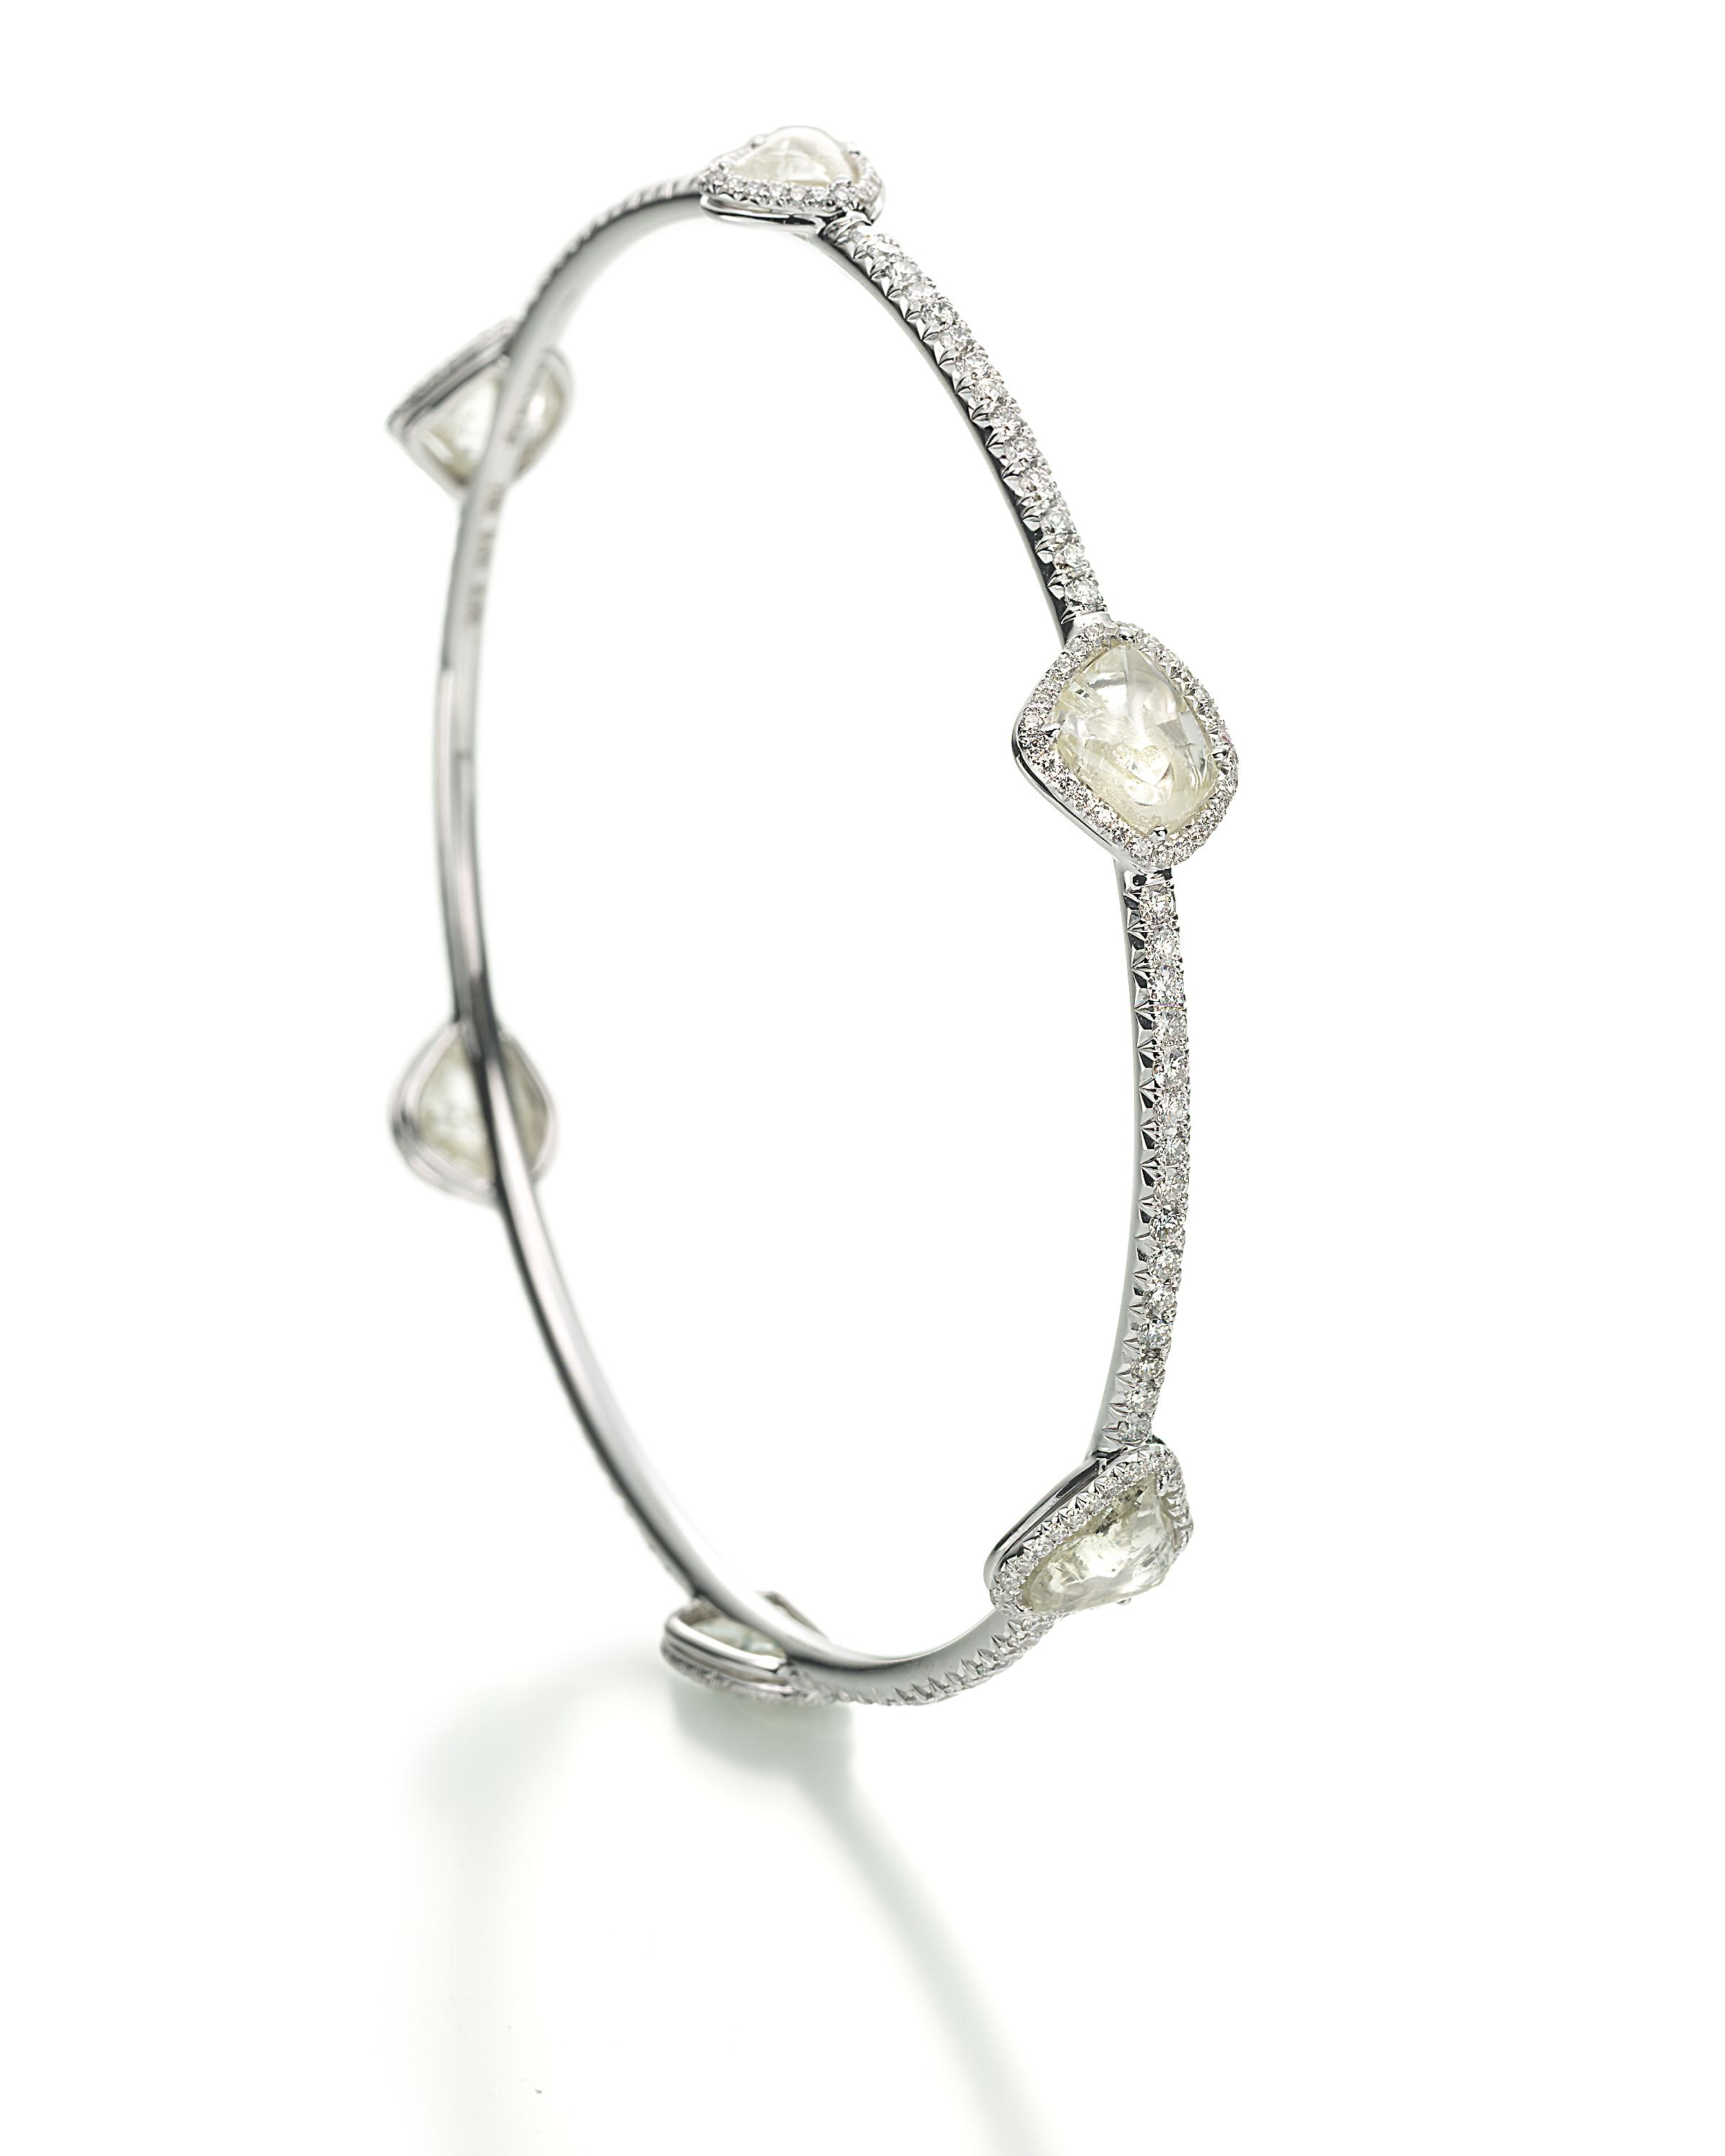 delicate diamond bangle. so pretty!